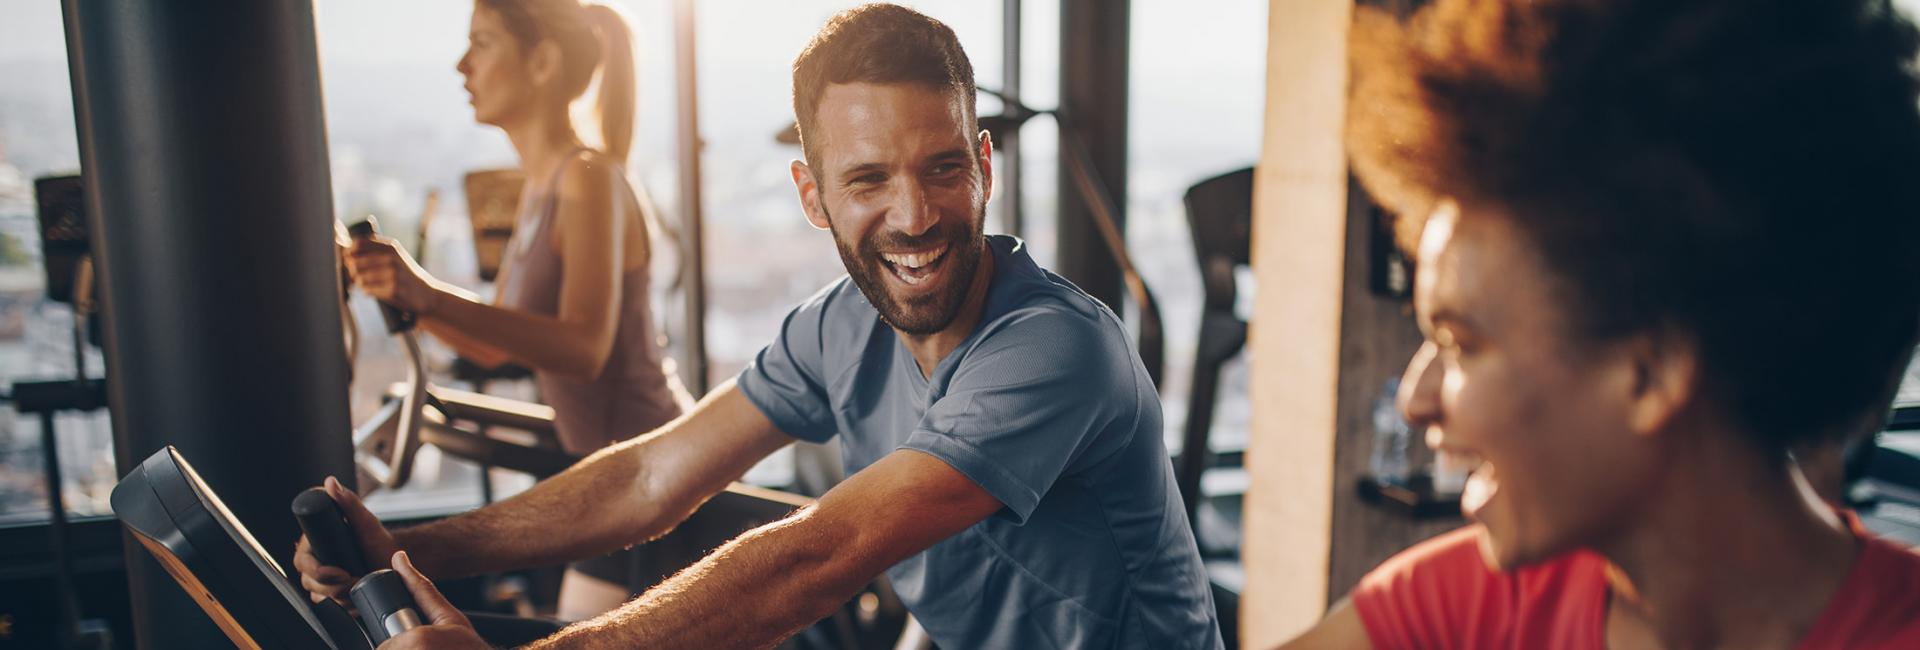 man and woman smile while on exercise bikes